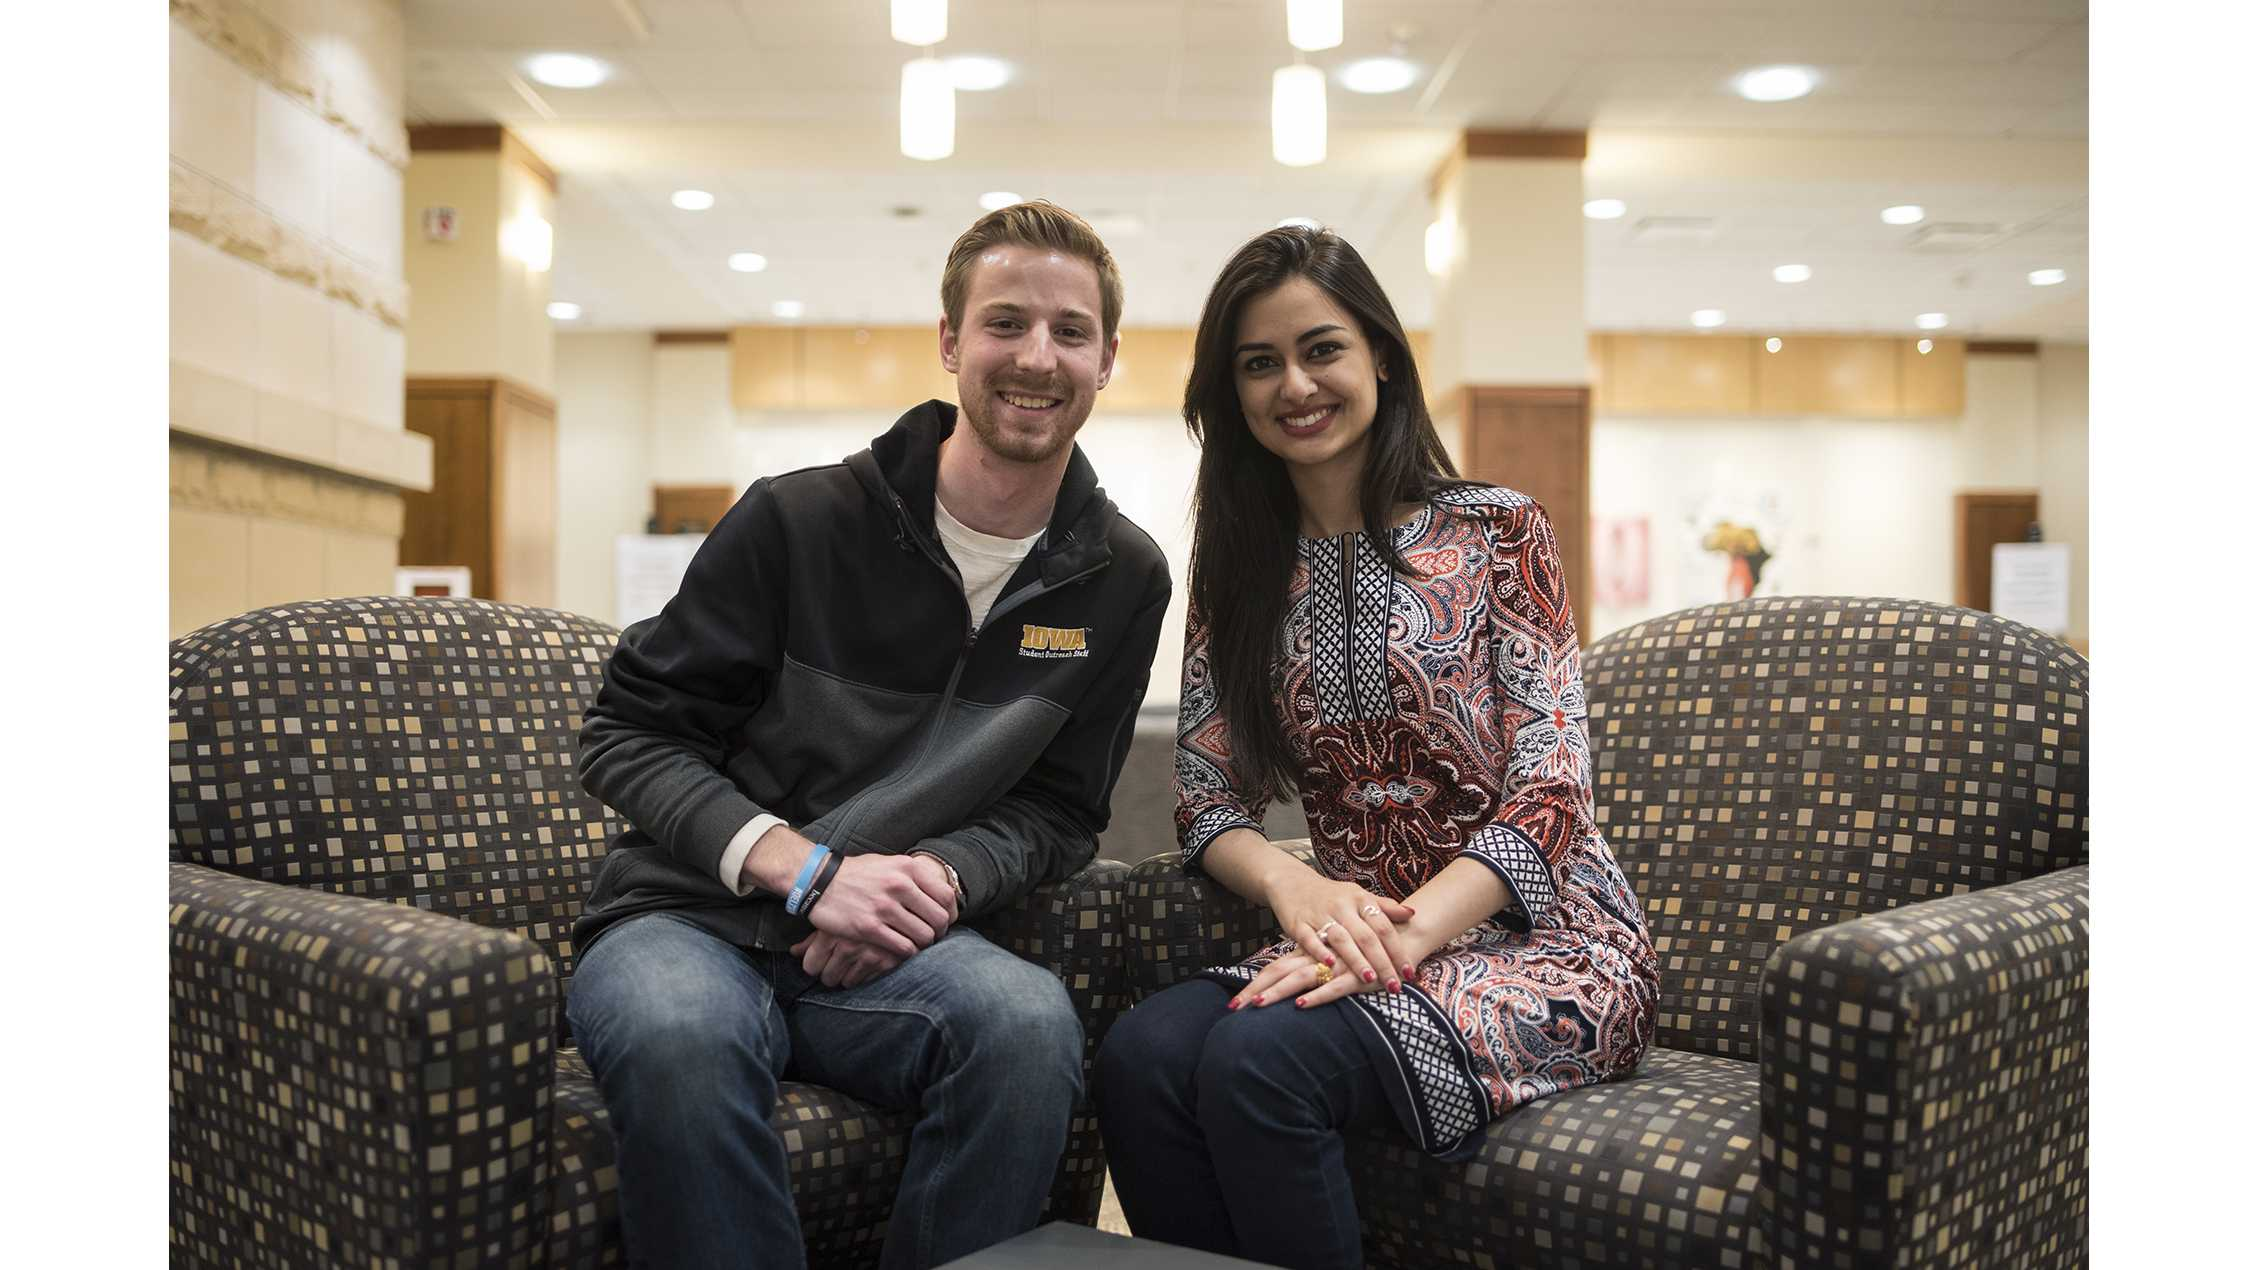 UISG Vice President, Heath Schintler, and President, Hira Mustafa, pose for portraits inside the Hubbard Commons of the IMU following the election results on Friday, March 30, 2018. Schintler and Mustafa are running on the Surge Party ticket who won the UISG election for the year 2018-19. (Ben Allan Smith/The Daily Iowan)